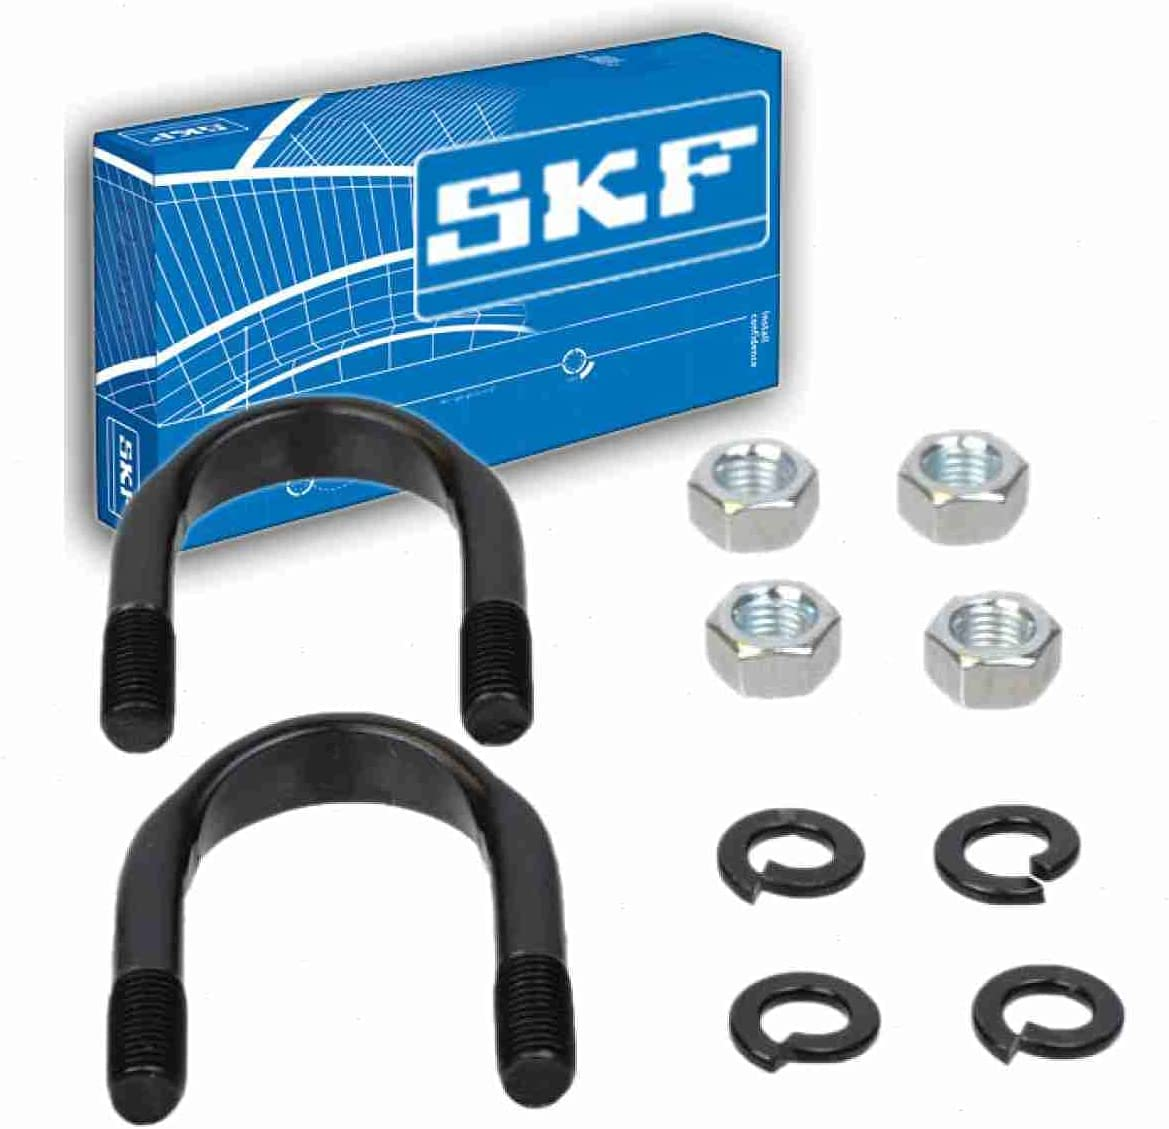 SKF unisex Rear Universal Joint Baltimore Mall U-Bolt with Chevrolet Kit Im compatible